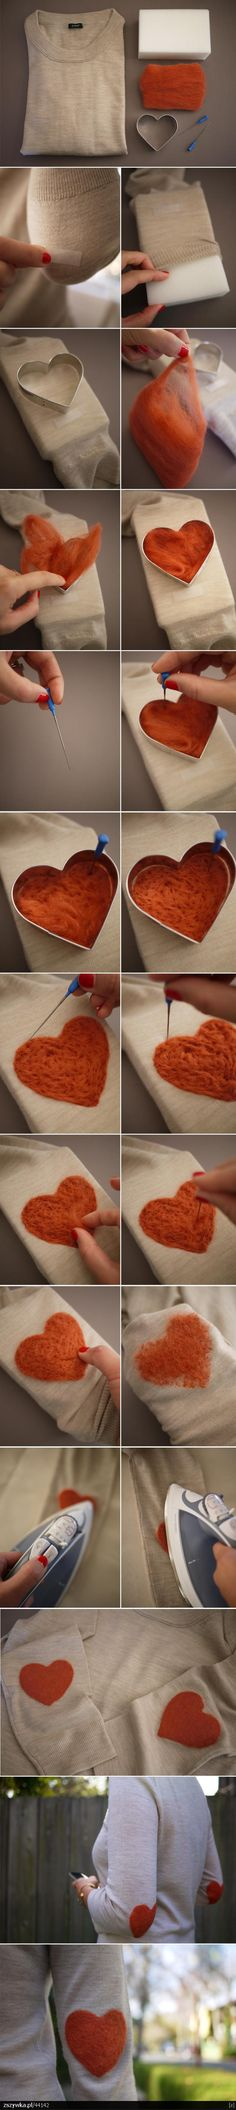 Heart needle felt #DIY #refashion